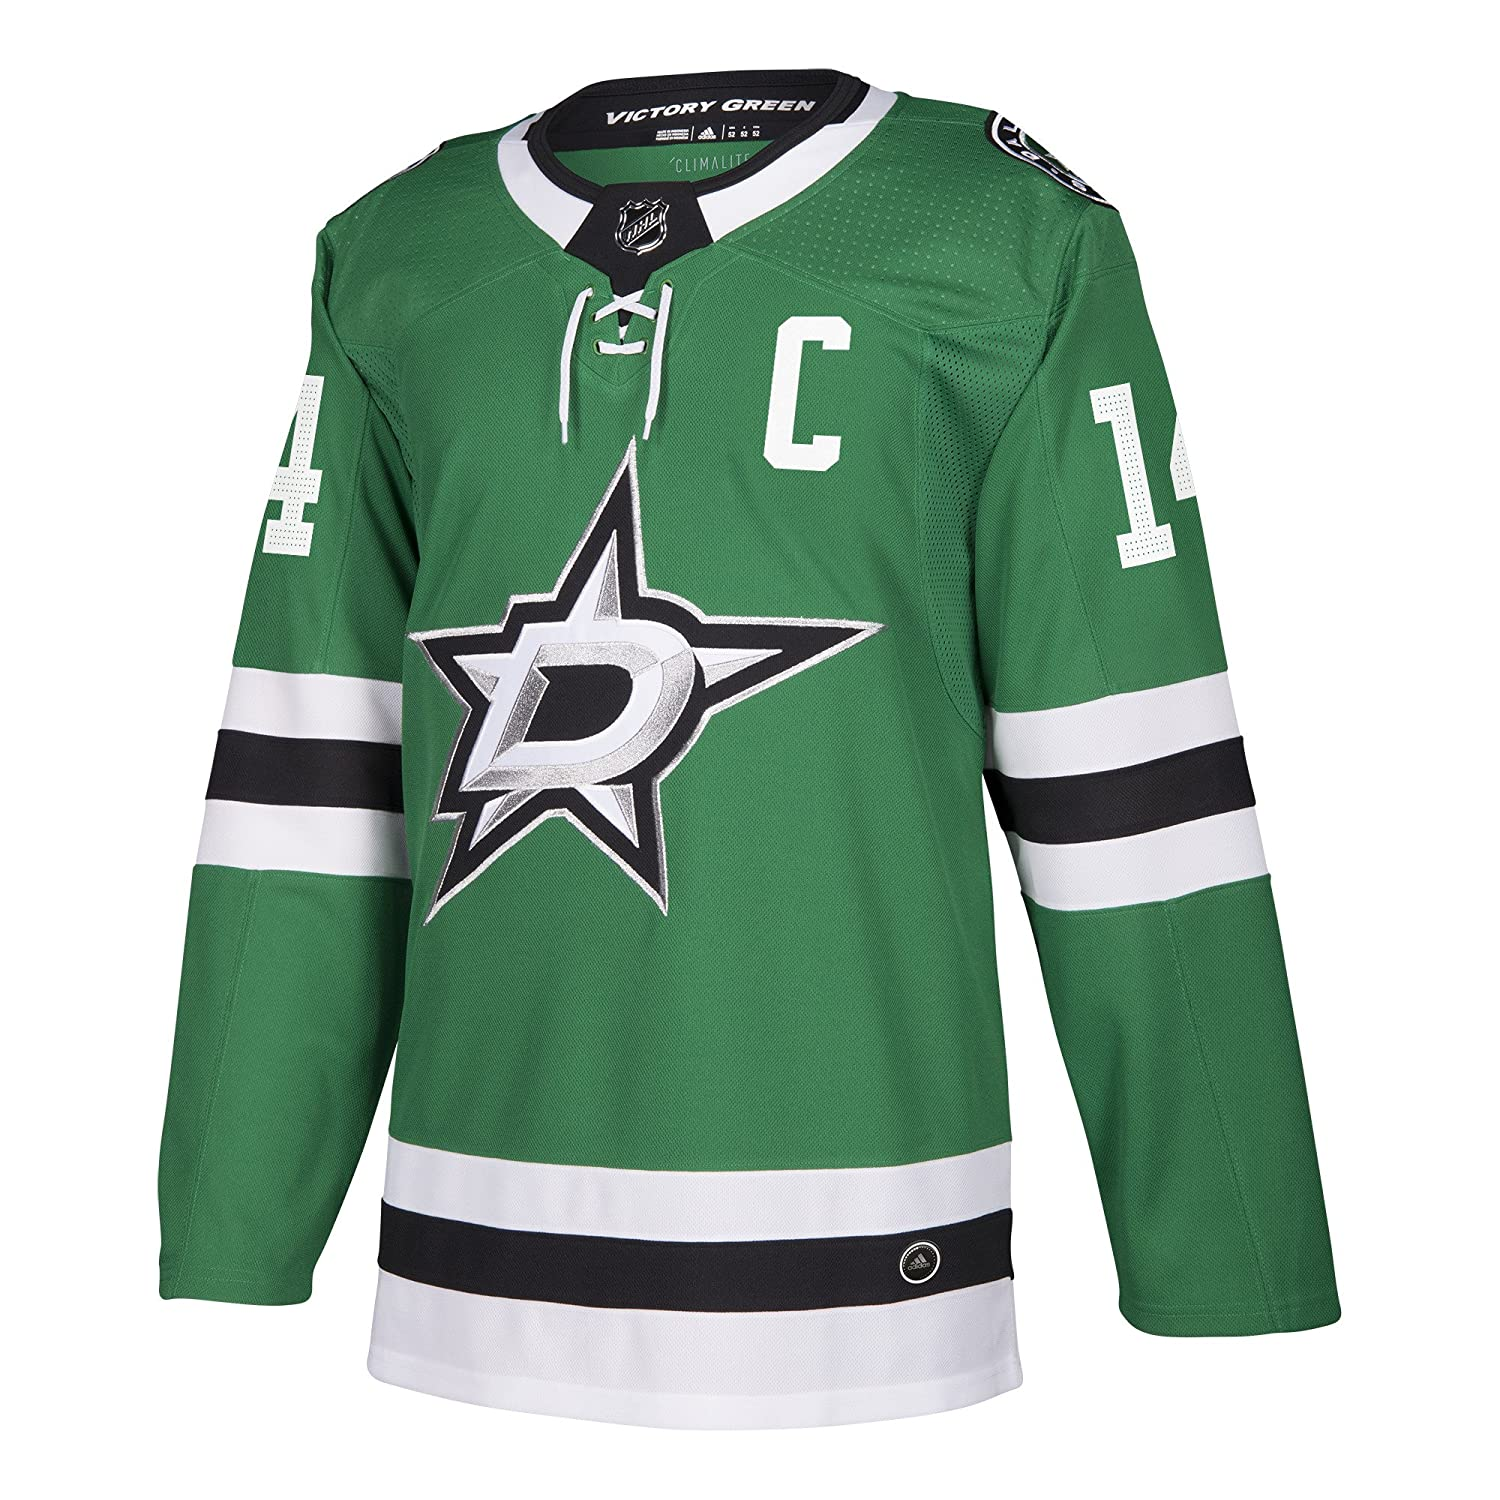 Authentic Authentic Jersey Jersey Stars Authentic Jersey Authentic Stars Stars Stars Jersey deddbdeddcca|Find Out How To Beat The On Line Football Contests